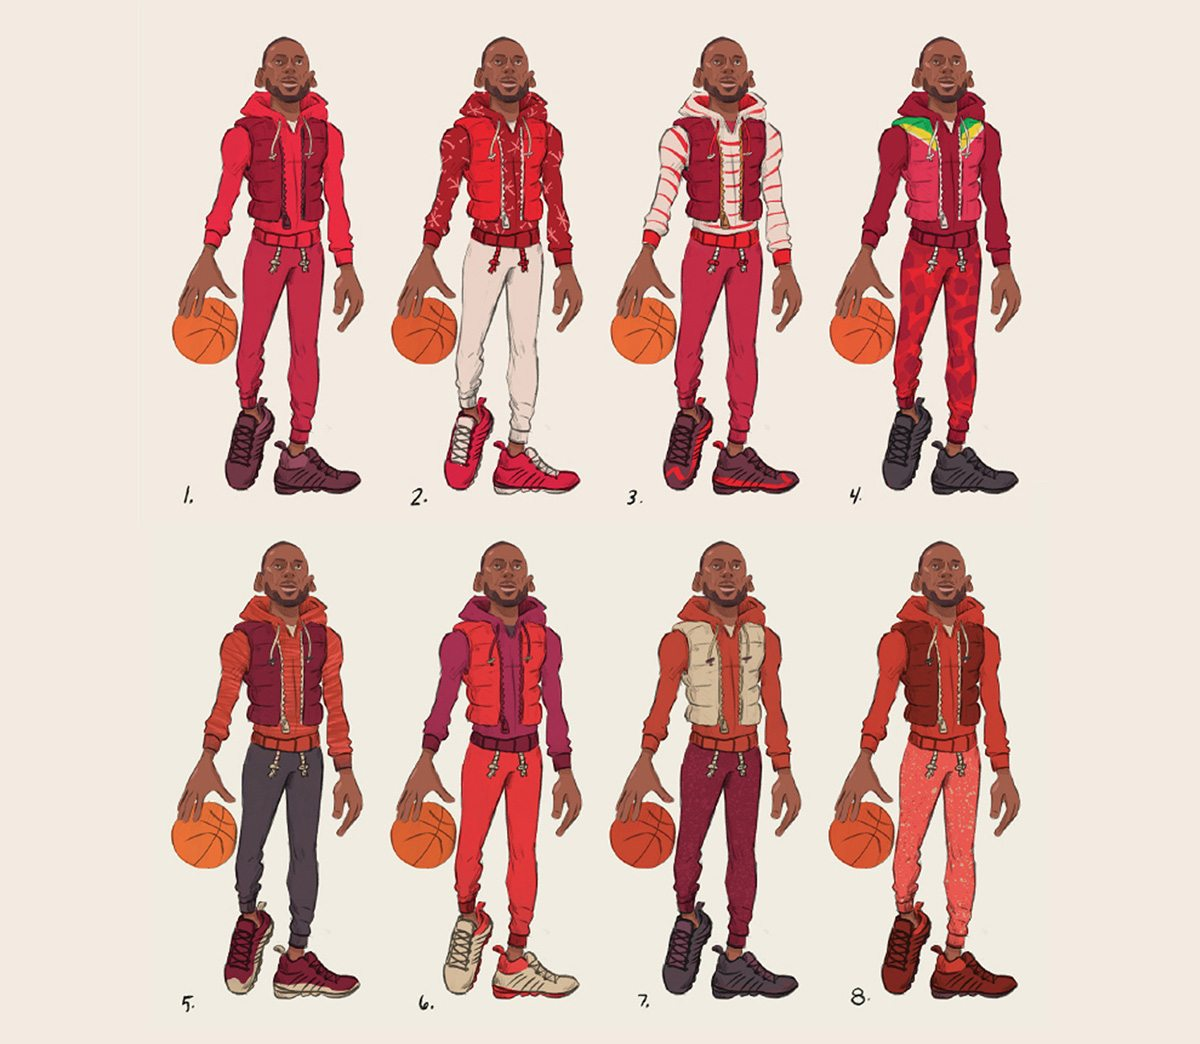 Designs for LeBron James' character.